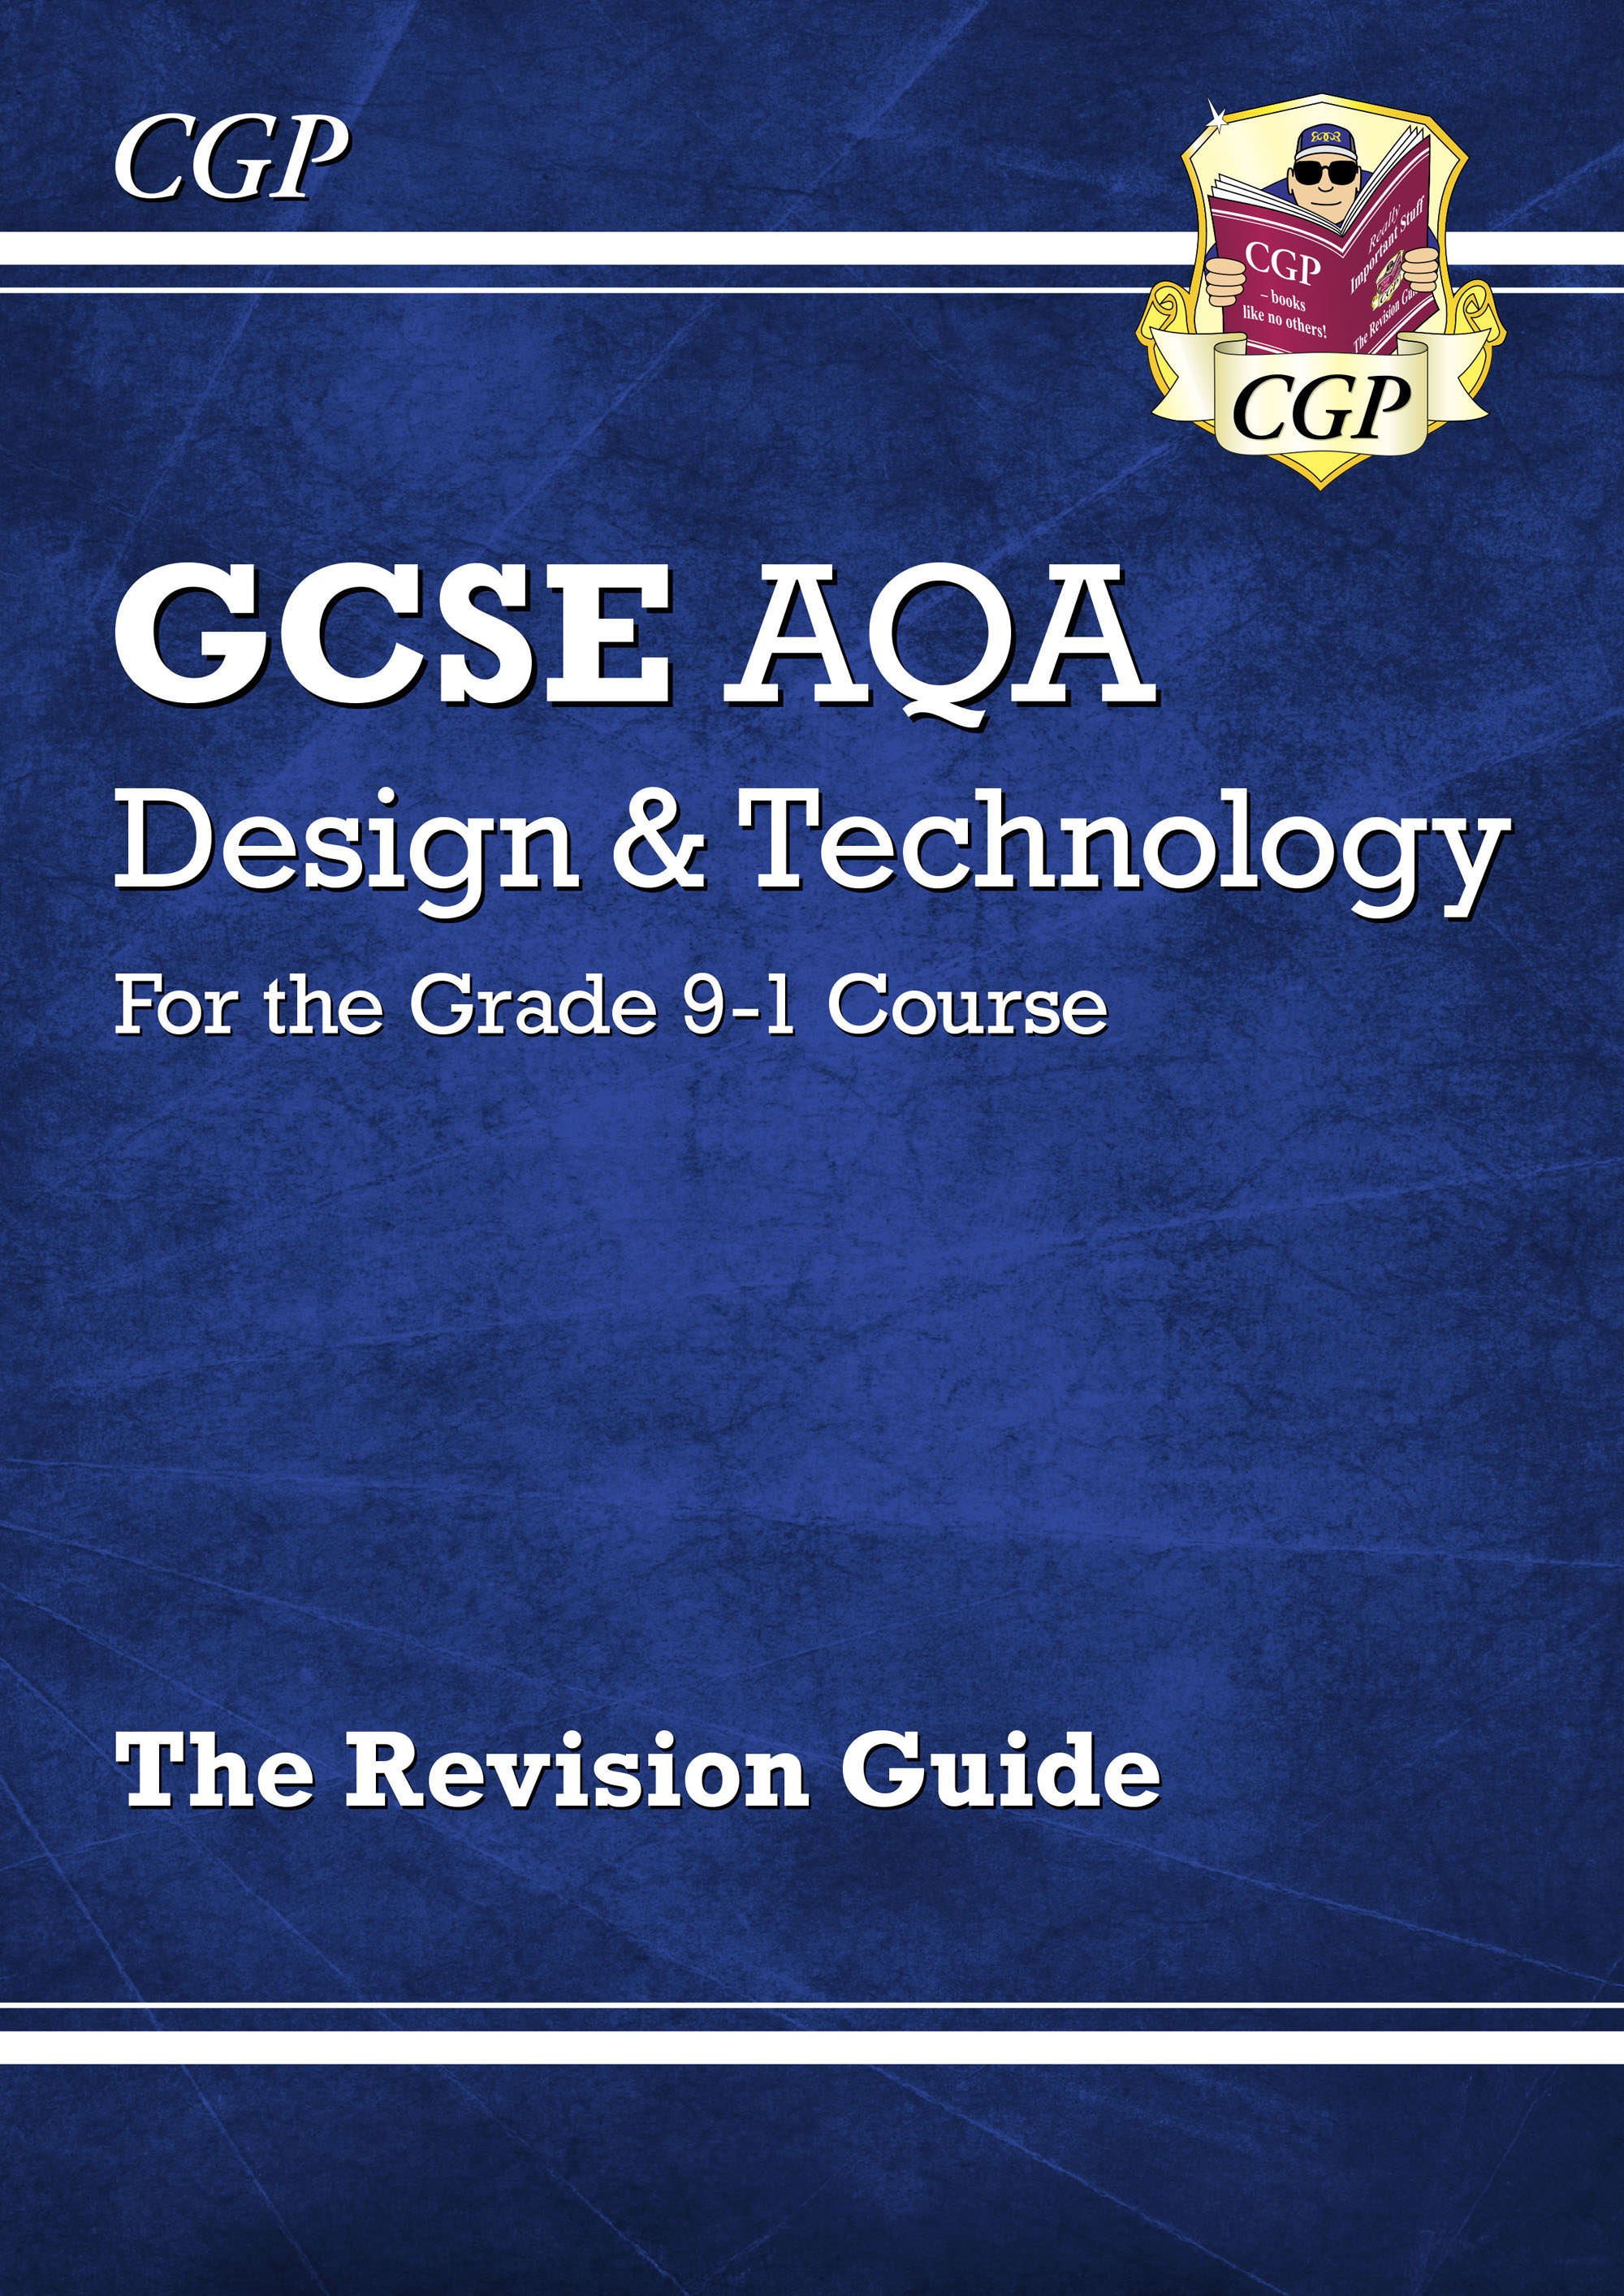 TAR41DK - New Grade 9-1 GCSE Design & Technology AQA Revision Guide